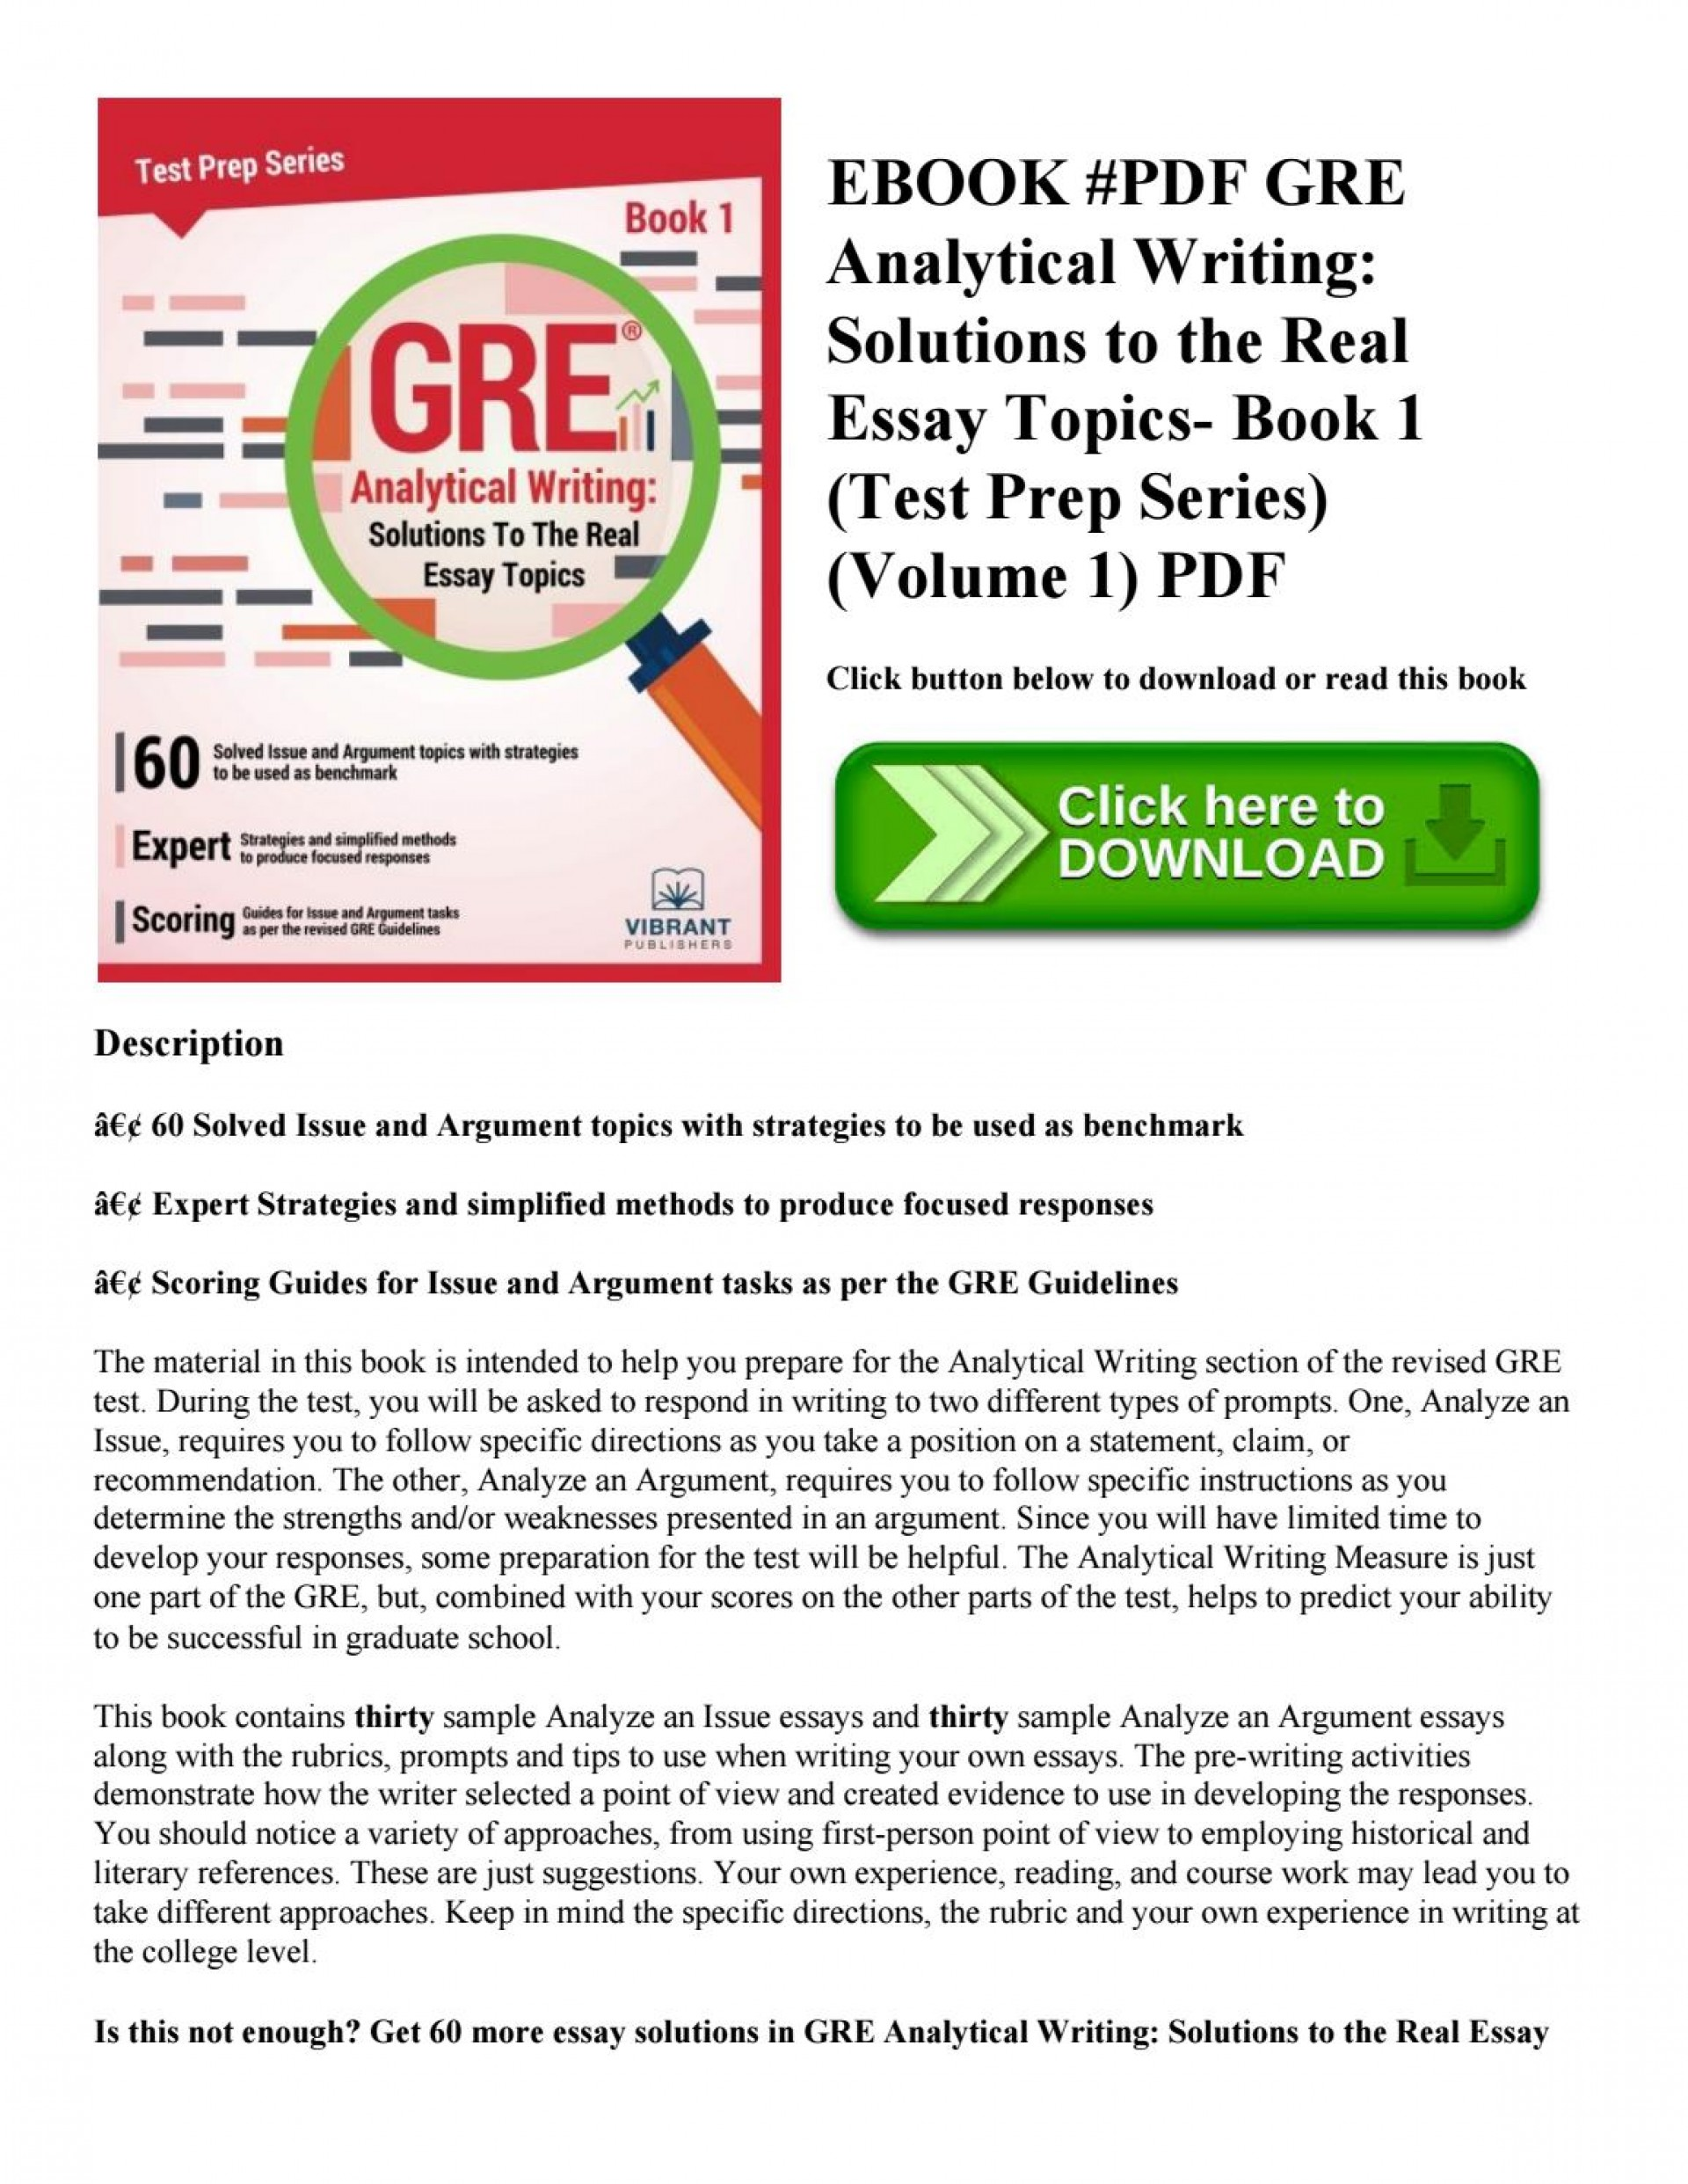 005 Essay Example Gre Book Pdf Page 1 Incredible Analytical Writing 1920